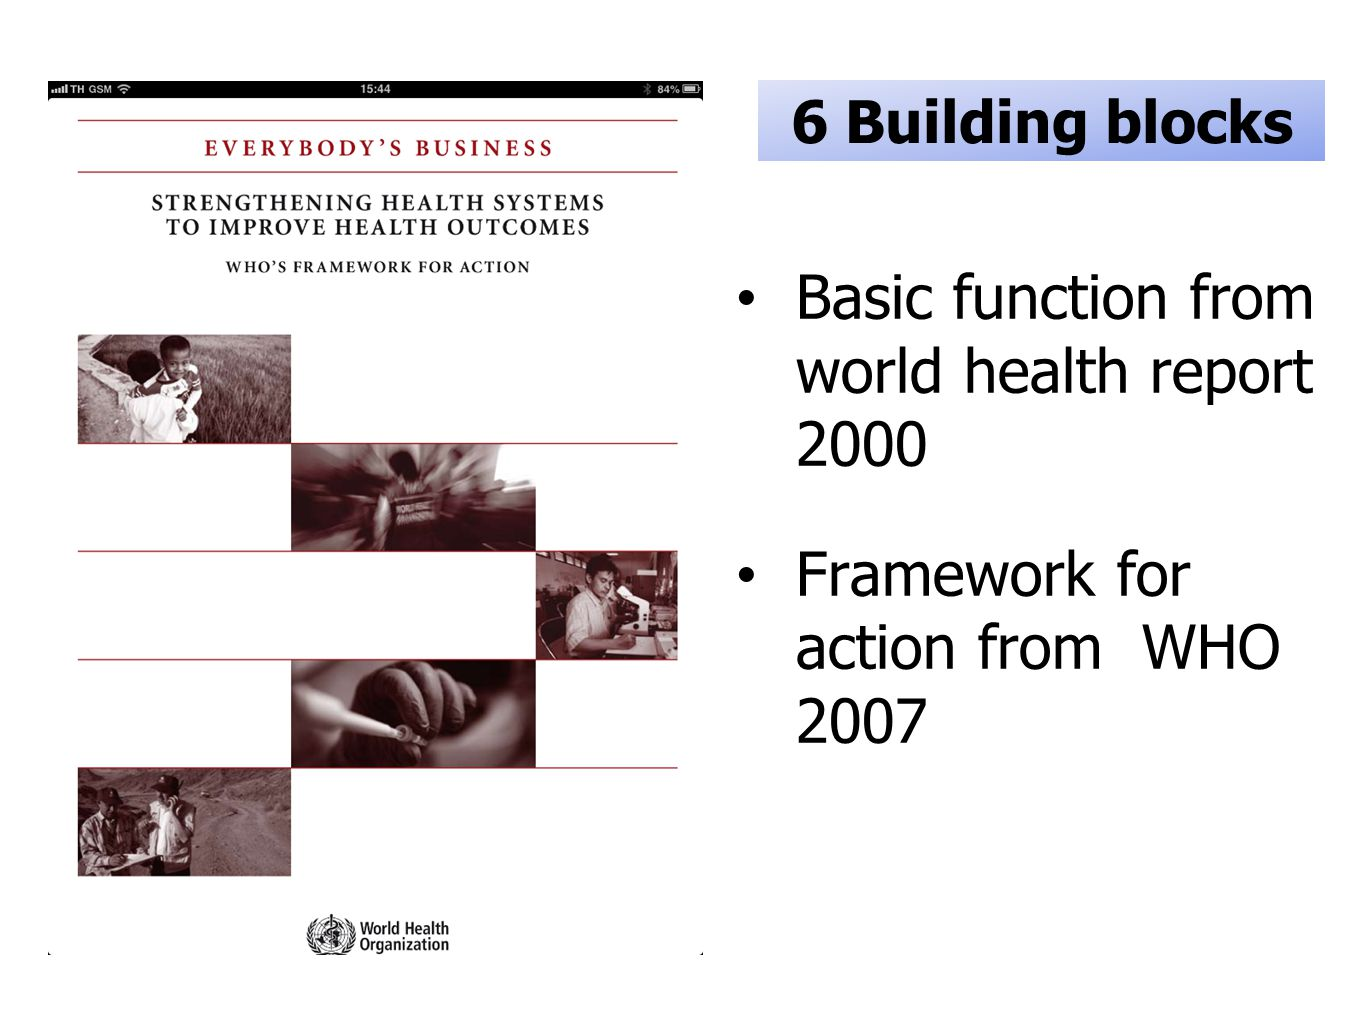 Basic function from world health report 2000